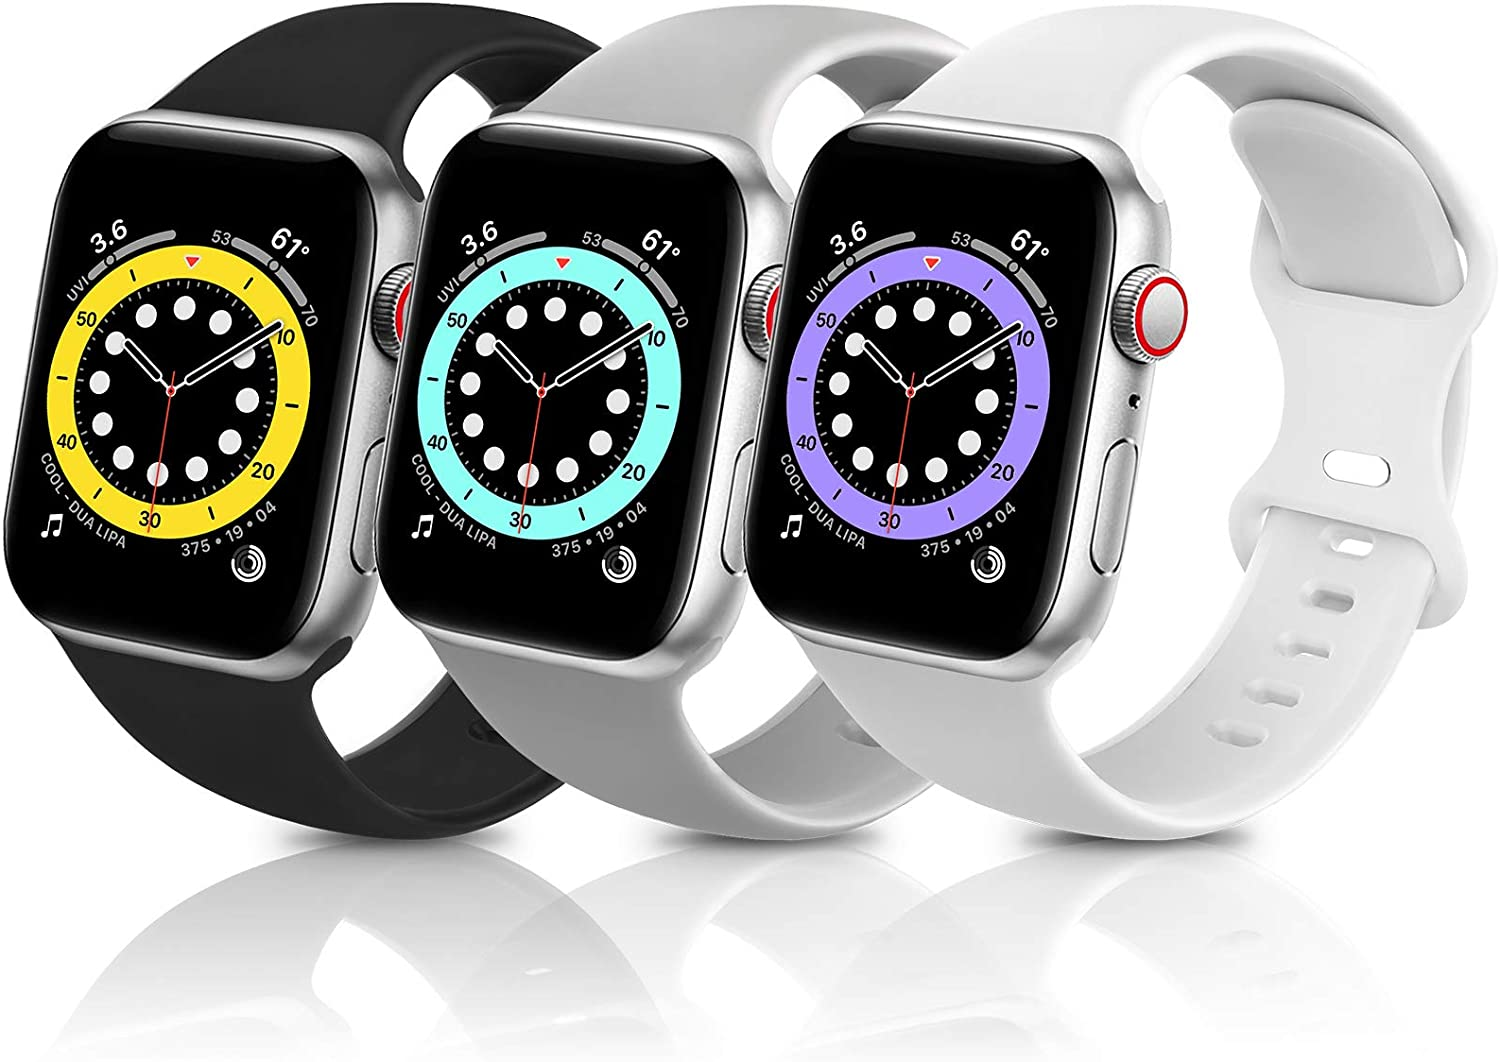 ZALAVER Bands Compatible with Apple Watch Band 38mm 40mm, Soft Silicone Sport Replacement Band Compatible with iWatch Series 6 5 4 3 2 1 Women Men Black/Gray/White 38mm/40mm S/M